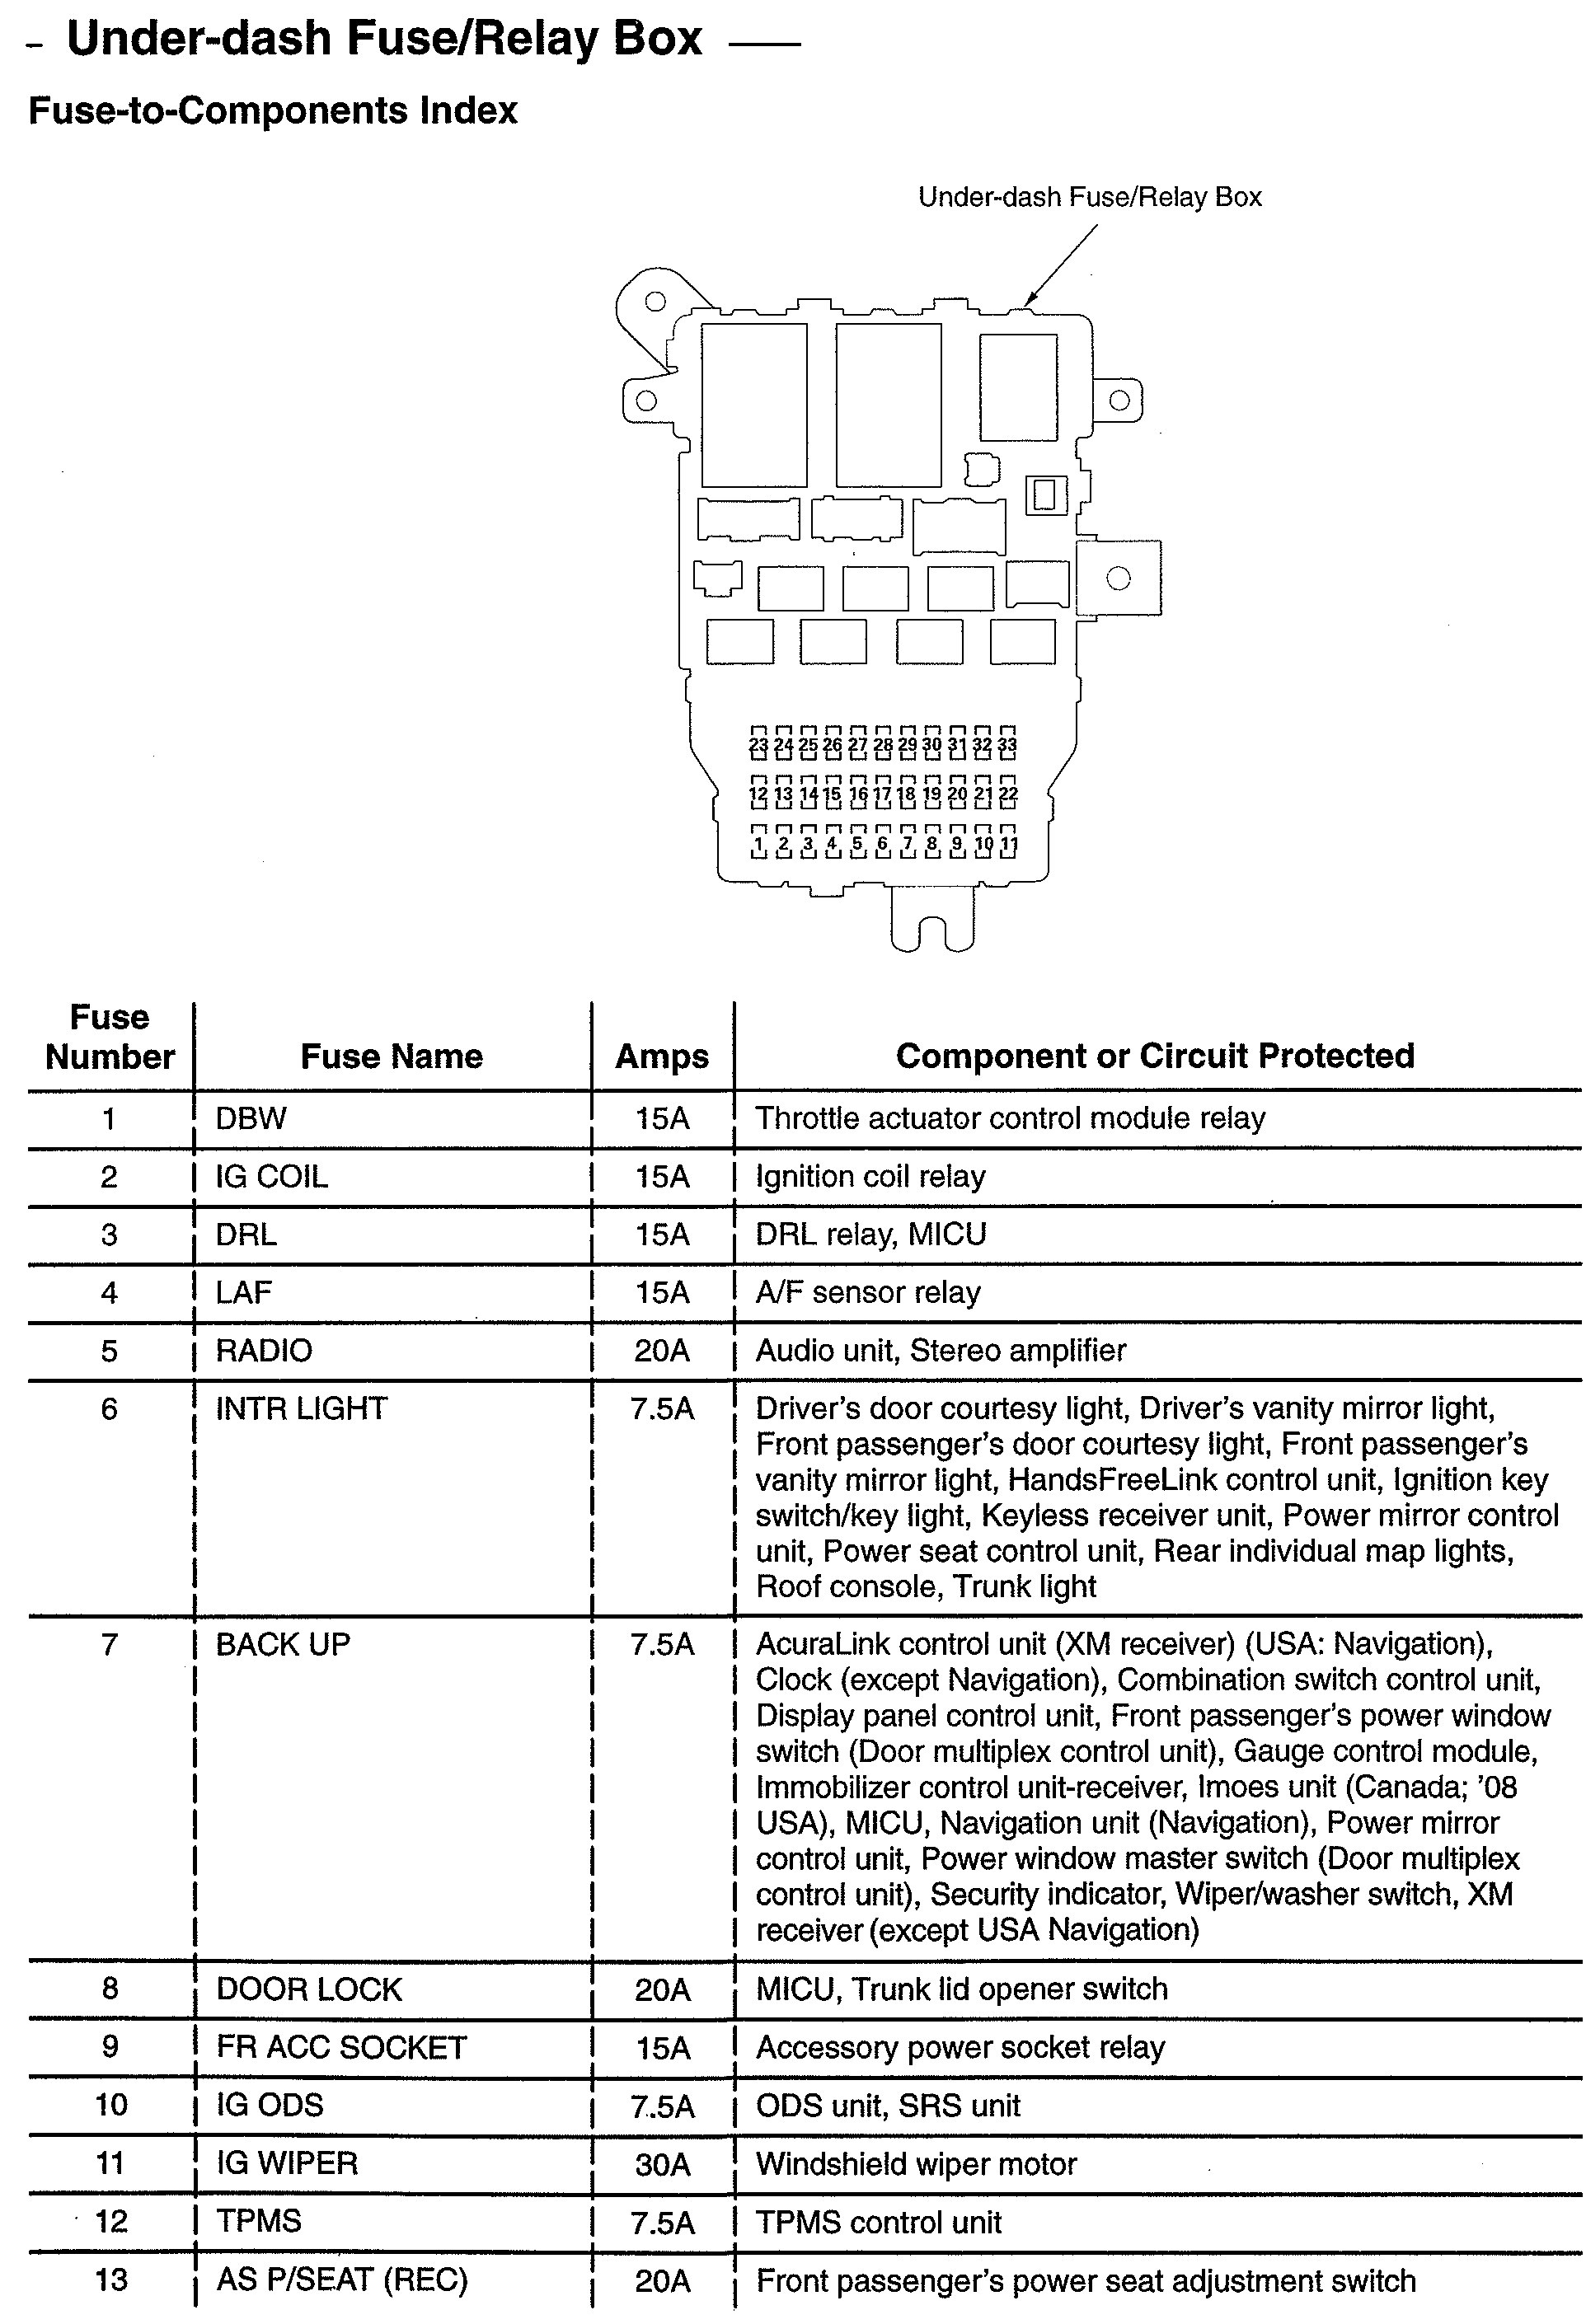 fuse box on 2006 acura tl example electrical wiring diagram u2022 rh cranejapan co  2005 acura tl exterior fuse box diagram